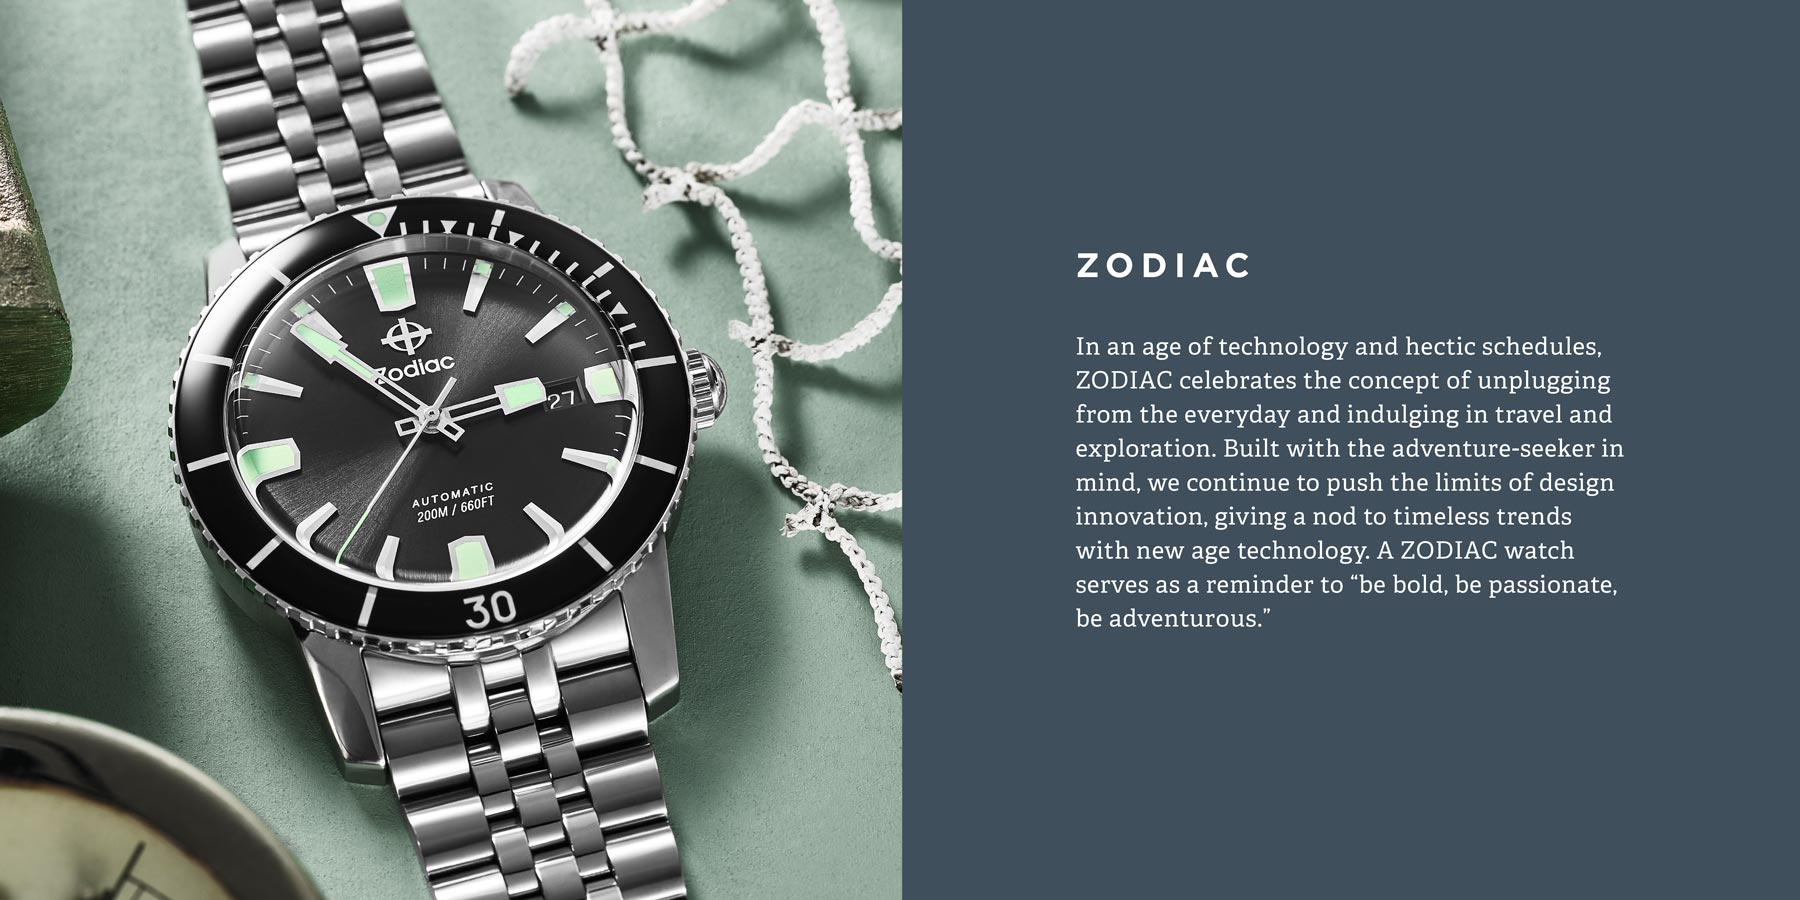 In an age of technology and hectic schedules, ZODIAC celebrates the concept of unplugging from the everyday and indulging in travel and exploration.